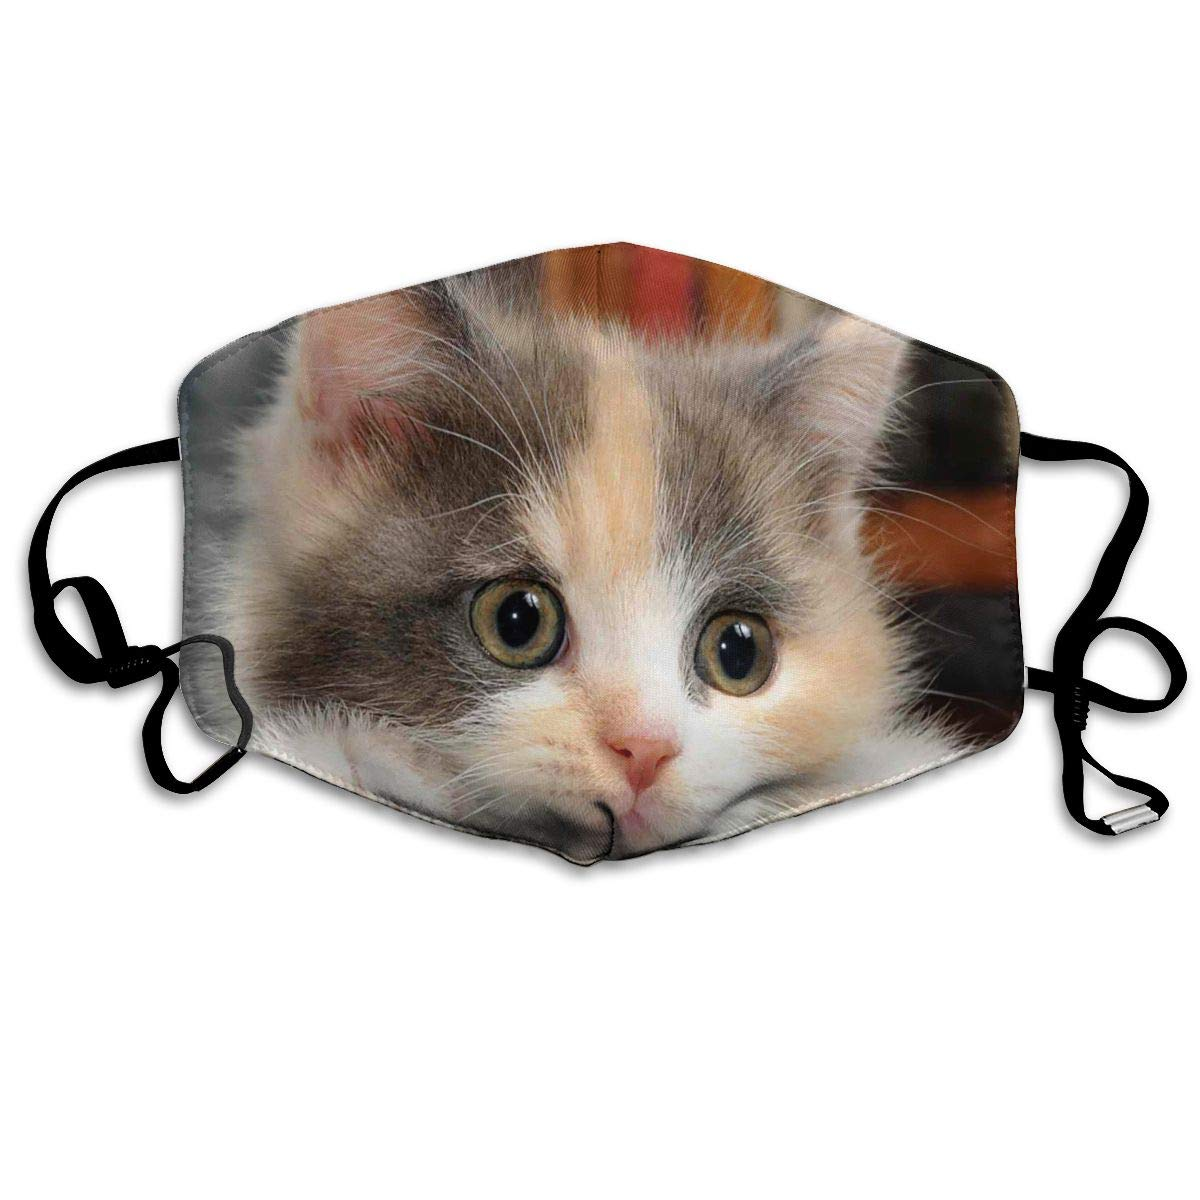 Face Masks Anti-Dust Mouth Cover Cool Cute Baby Cat Kitty Face Funny Animal Washable And Reusable Mask Warm Windproof For Women